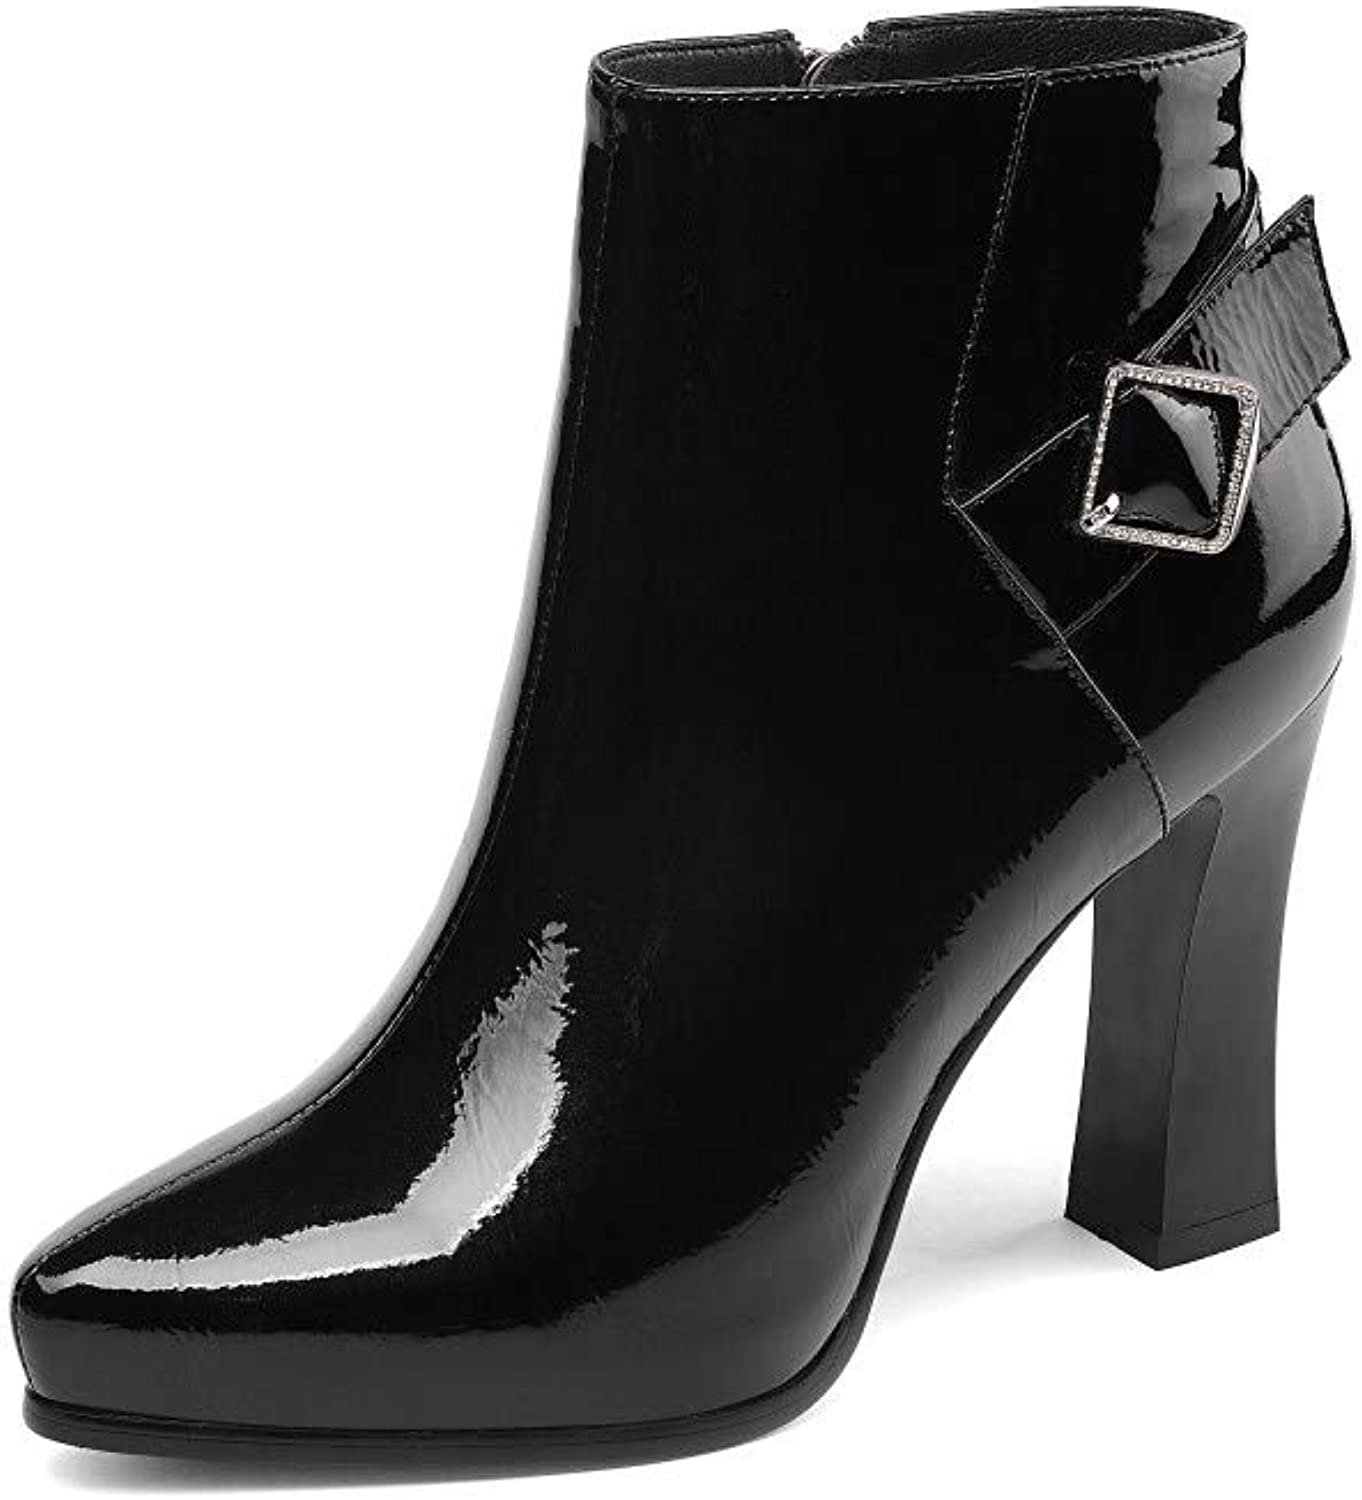 Nine Seven Patent Leather Women's Pointed Toe High Chunky Heel Side Zip Handmade Buckle Strap Graceful Dress Ankle Booties